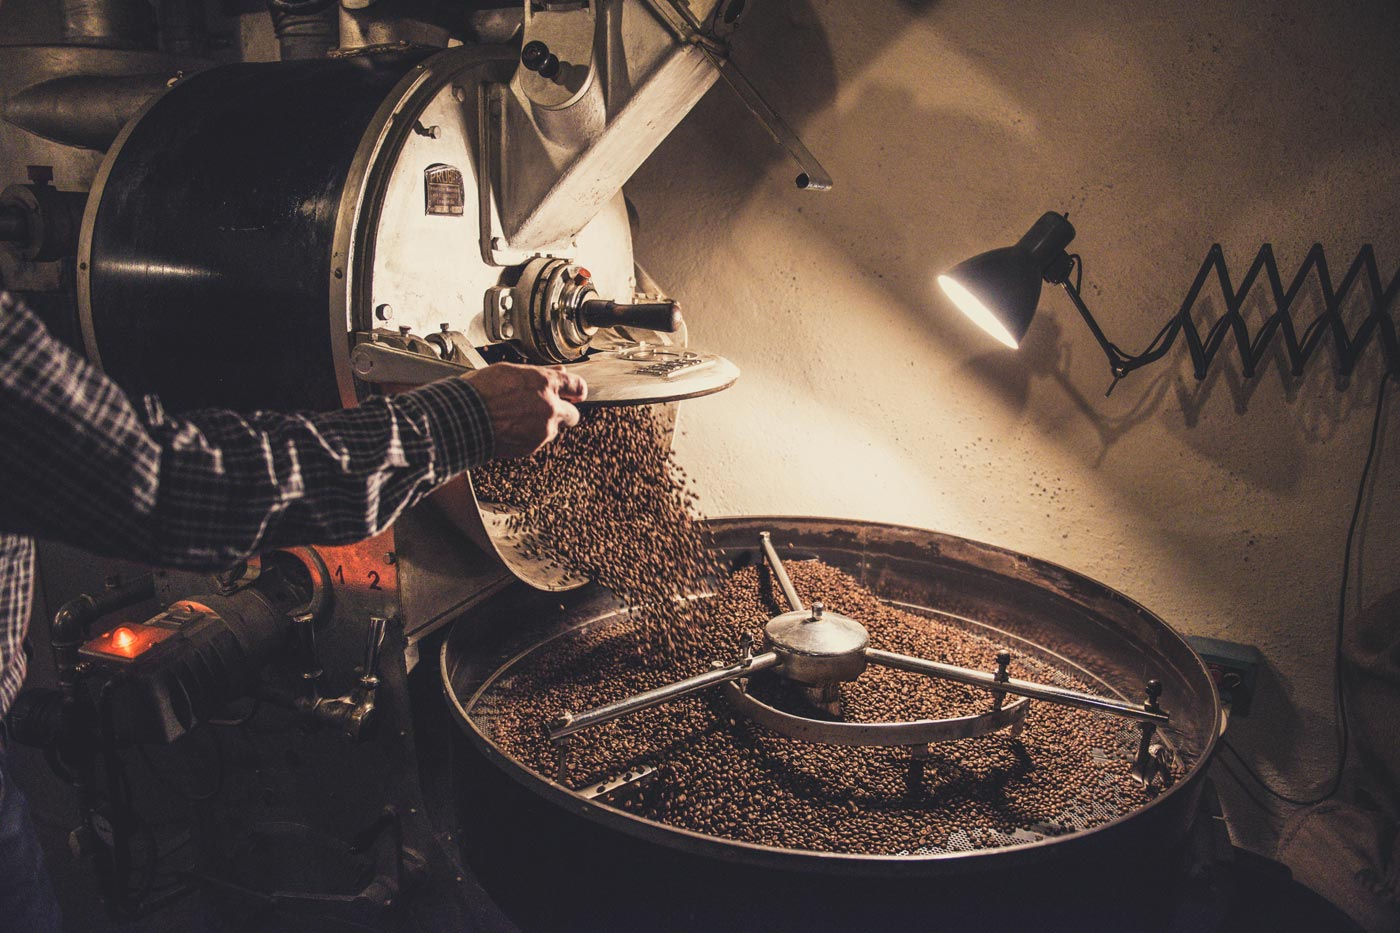 coffee roaster pouring beans into drum